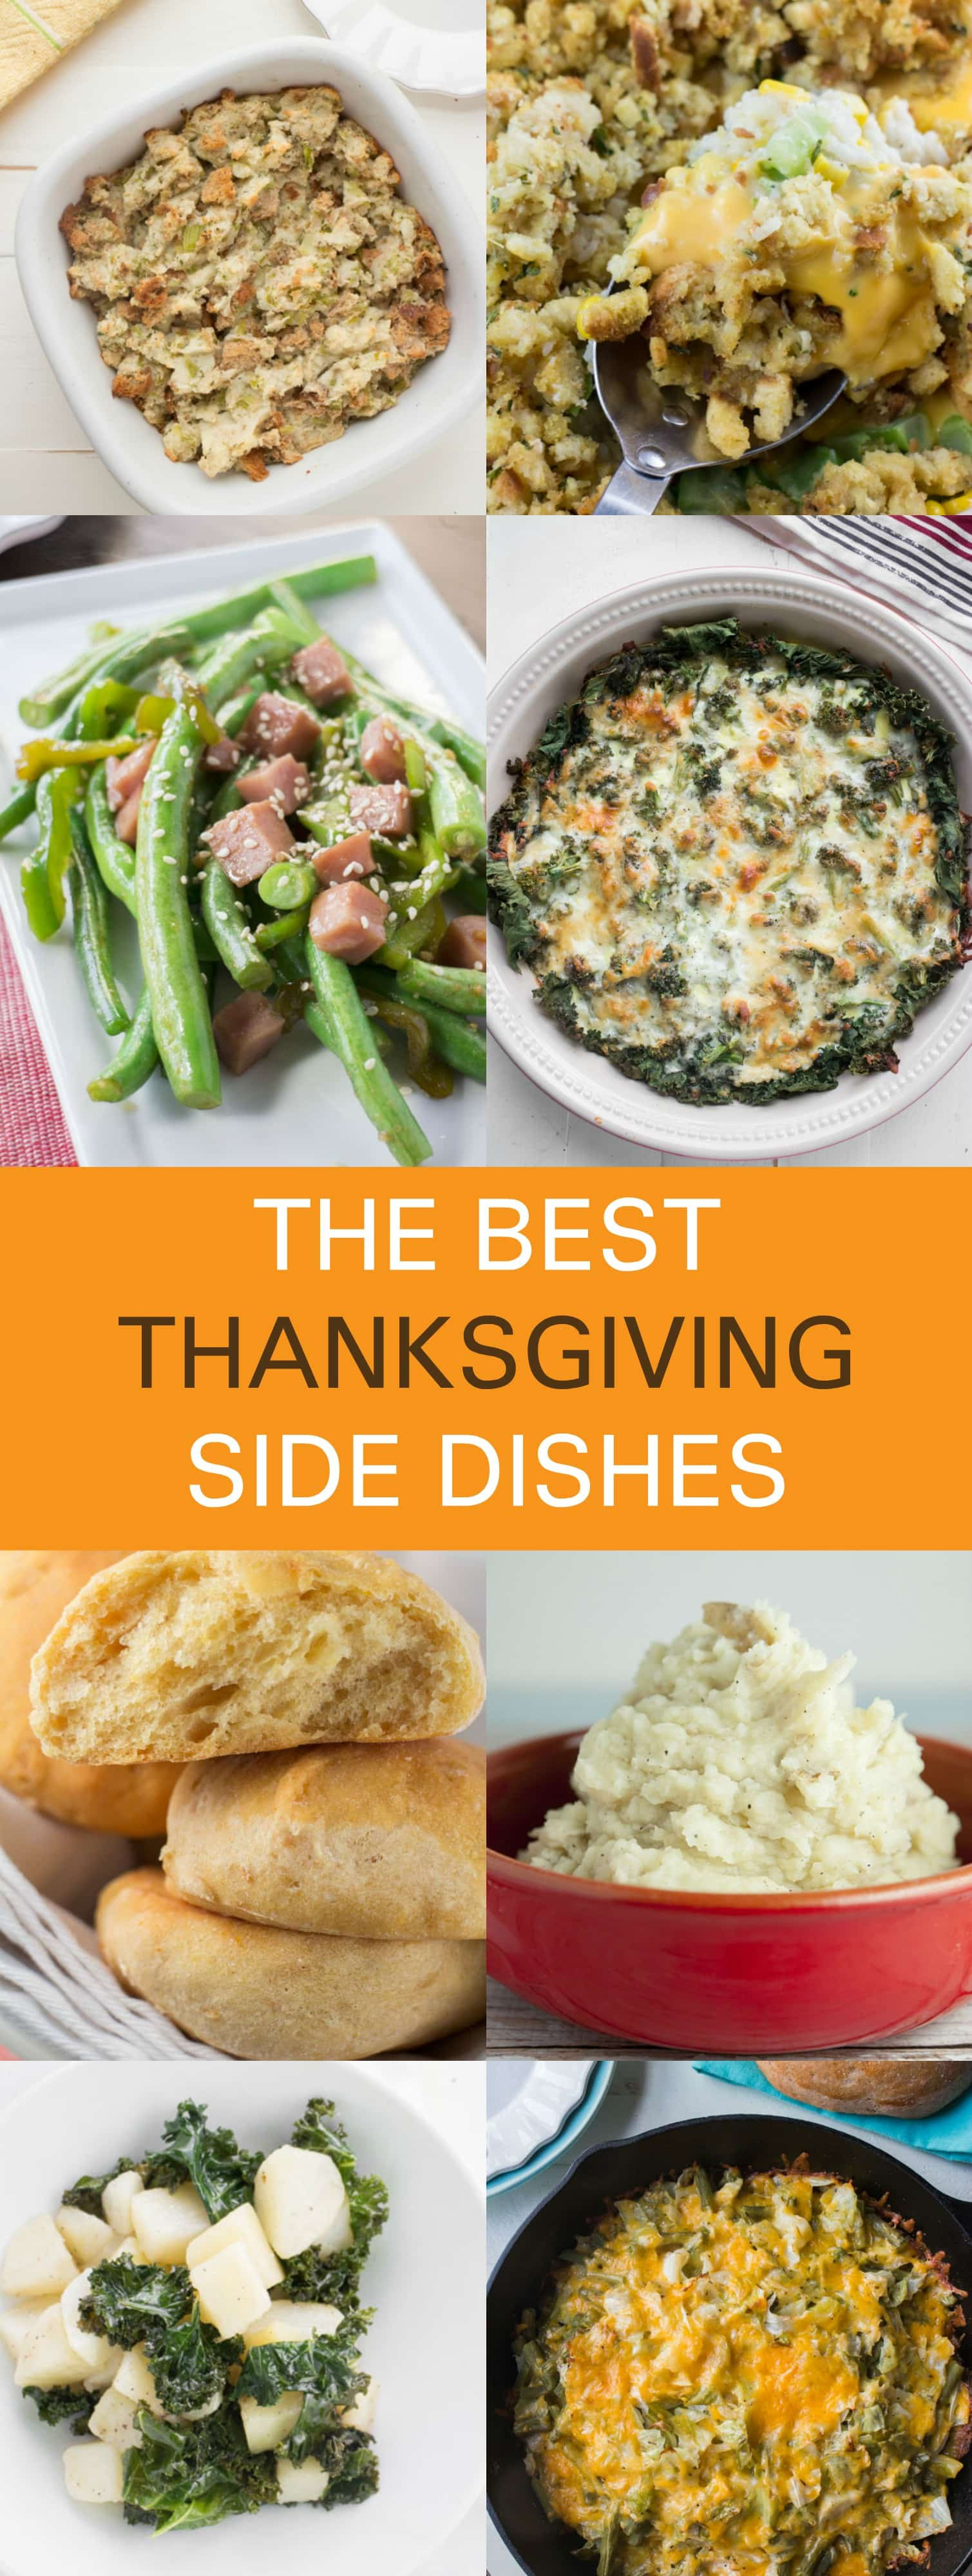 Favorite Thanksgiving Side Dishes  My Favorite Thanksgiving Side Dishes Brooklyn Farm Girl